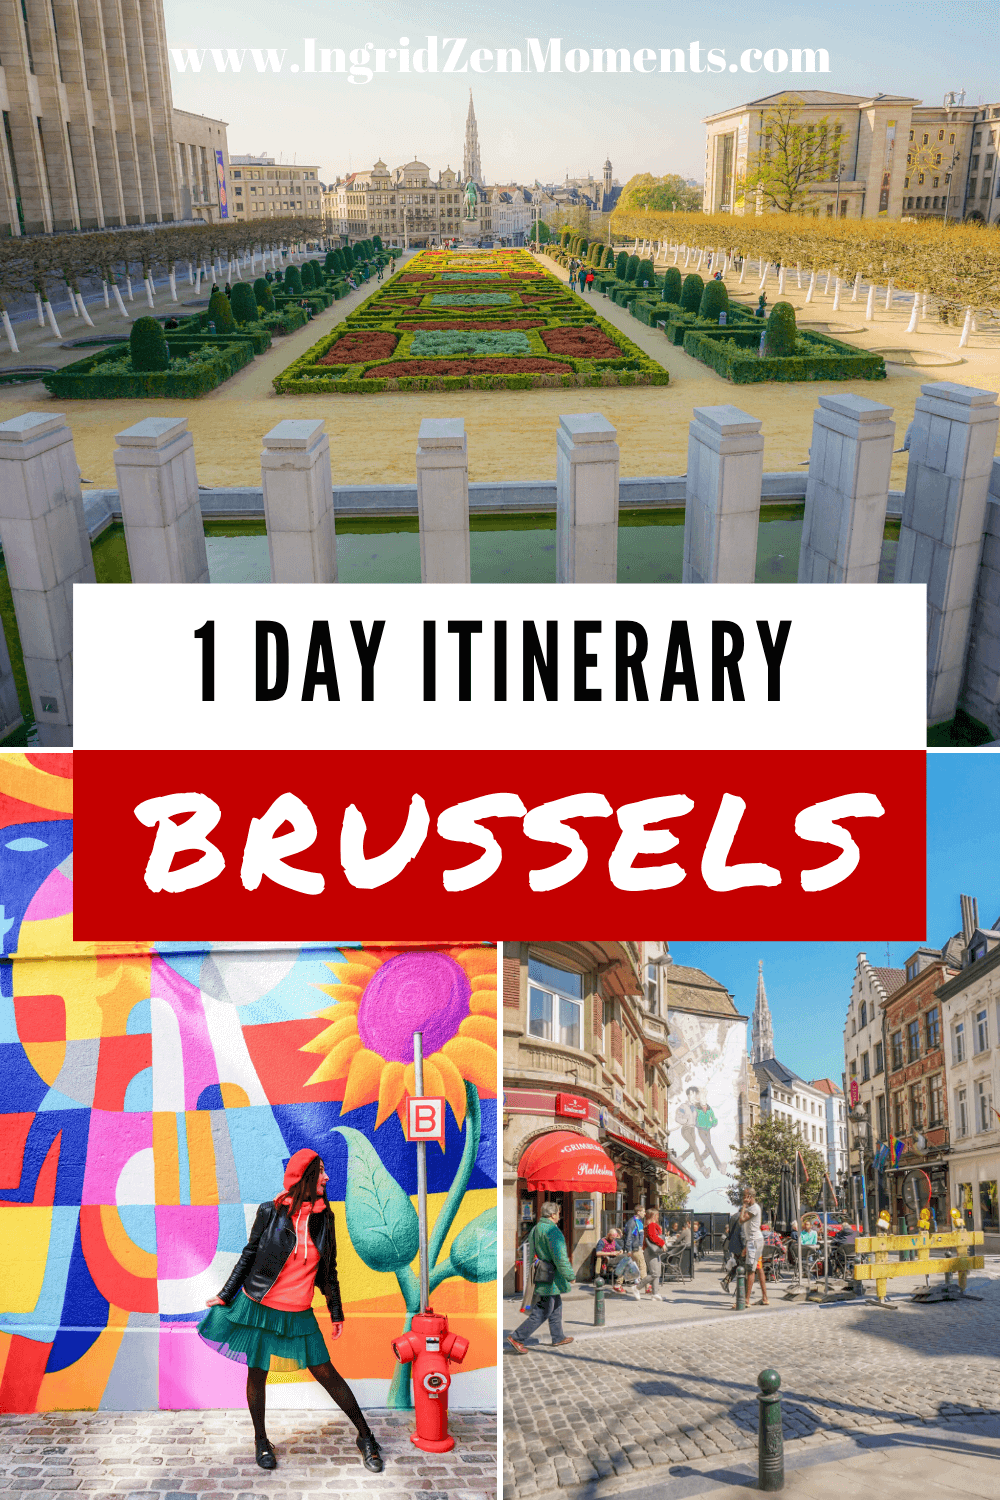 One day in Brussels itinerary - read my complete guide for spending 1 day in Brussels. Including where to stay in Brussels, what to eat in Brussels, and the city's highlights. #brussels #daytrip #europe #travel #traveltips #belgium